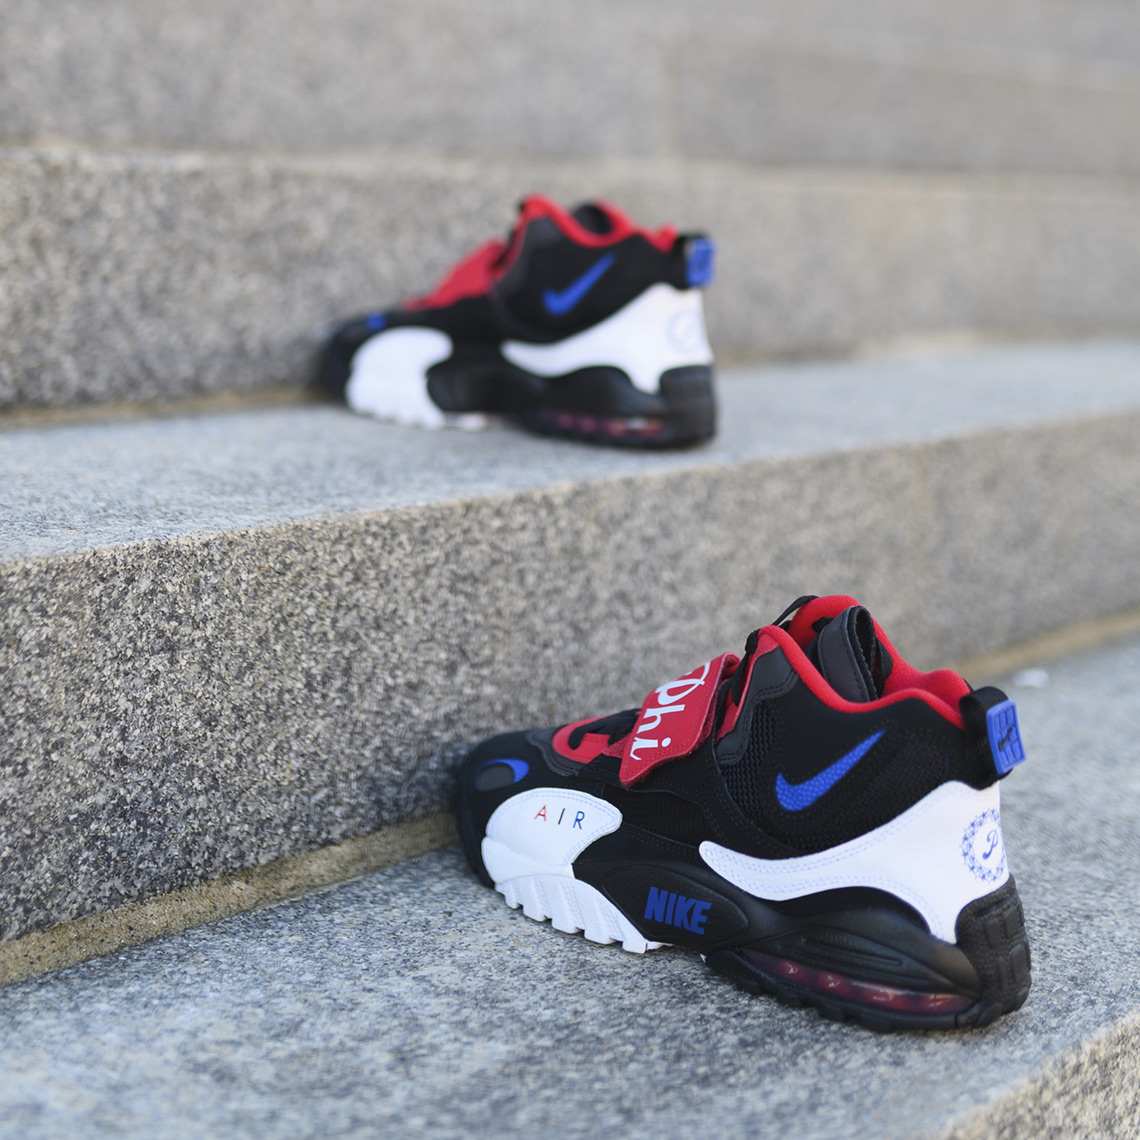 a9c83bdece9 Nike Speed Turf Max Philly Home/Away Release Info | SneakerNews.com